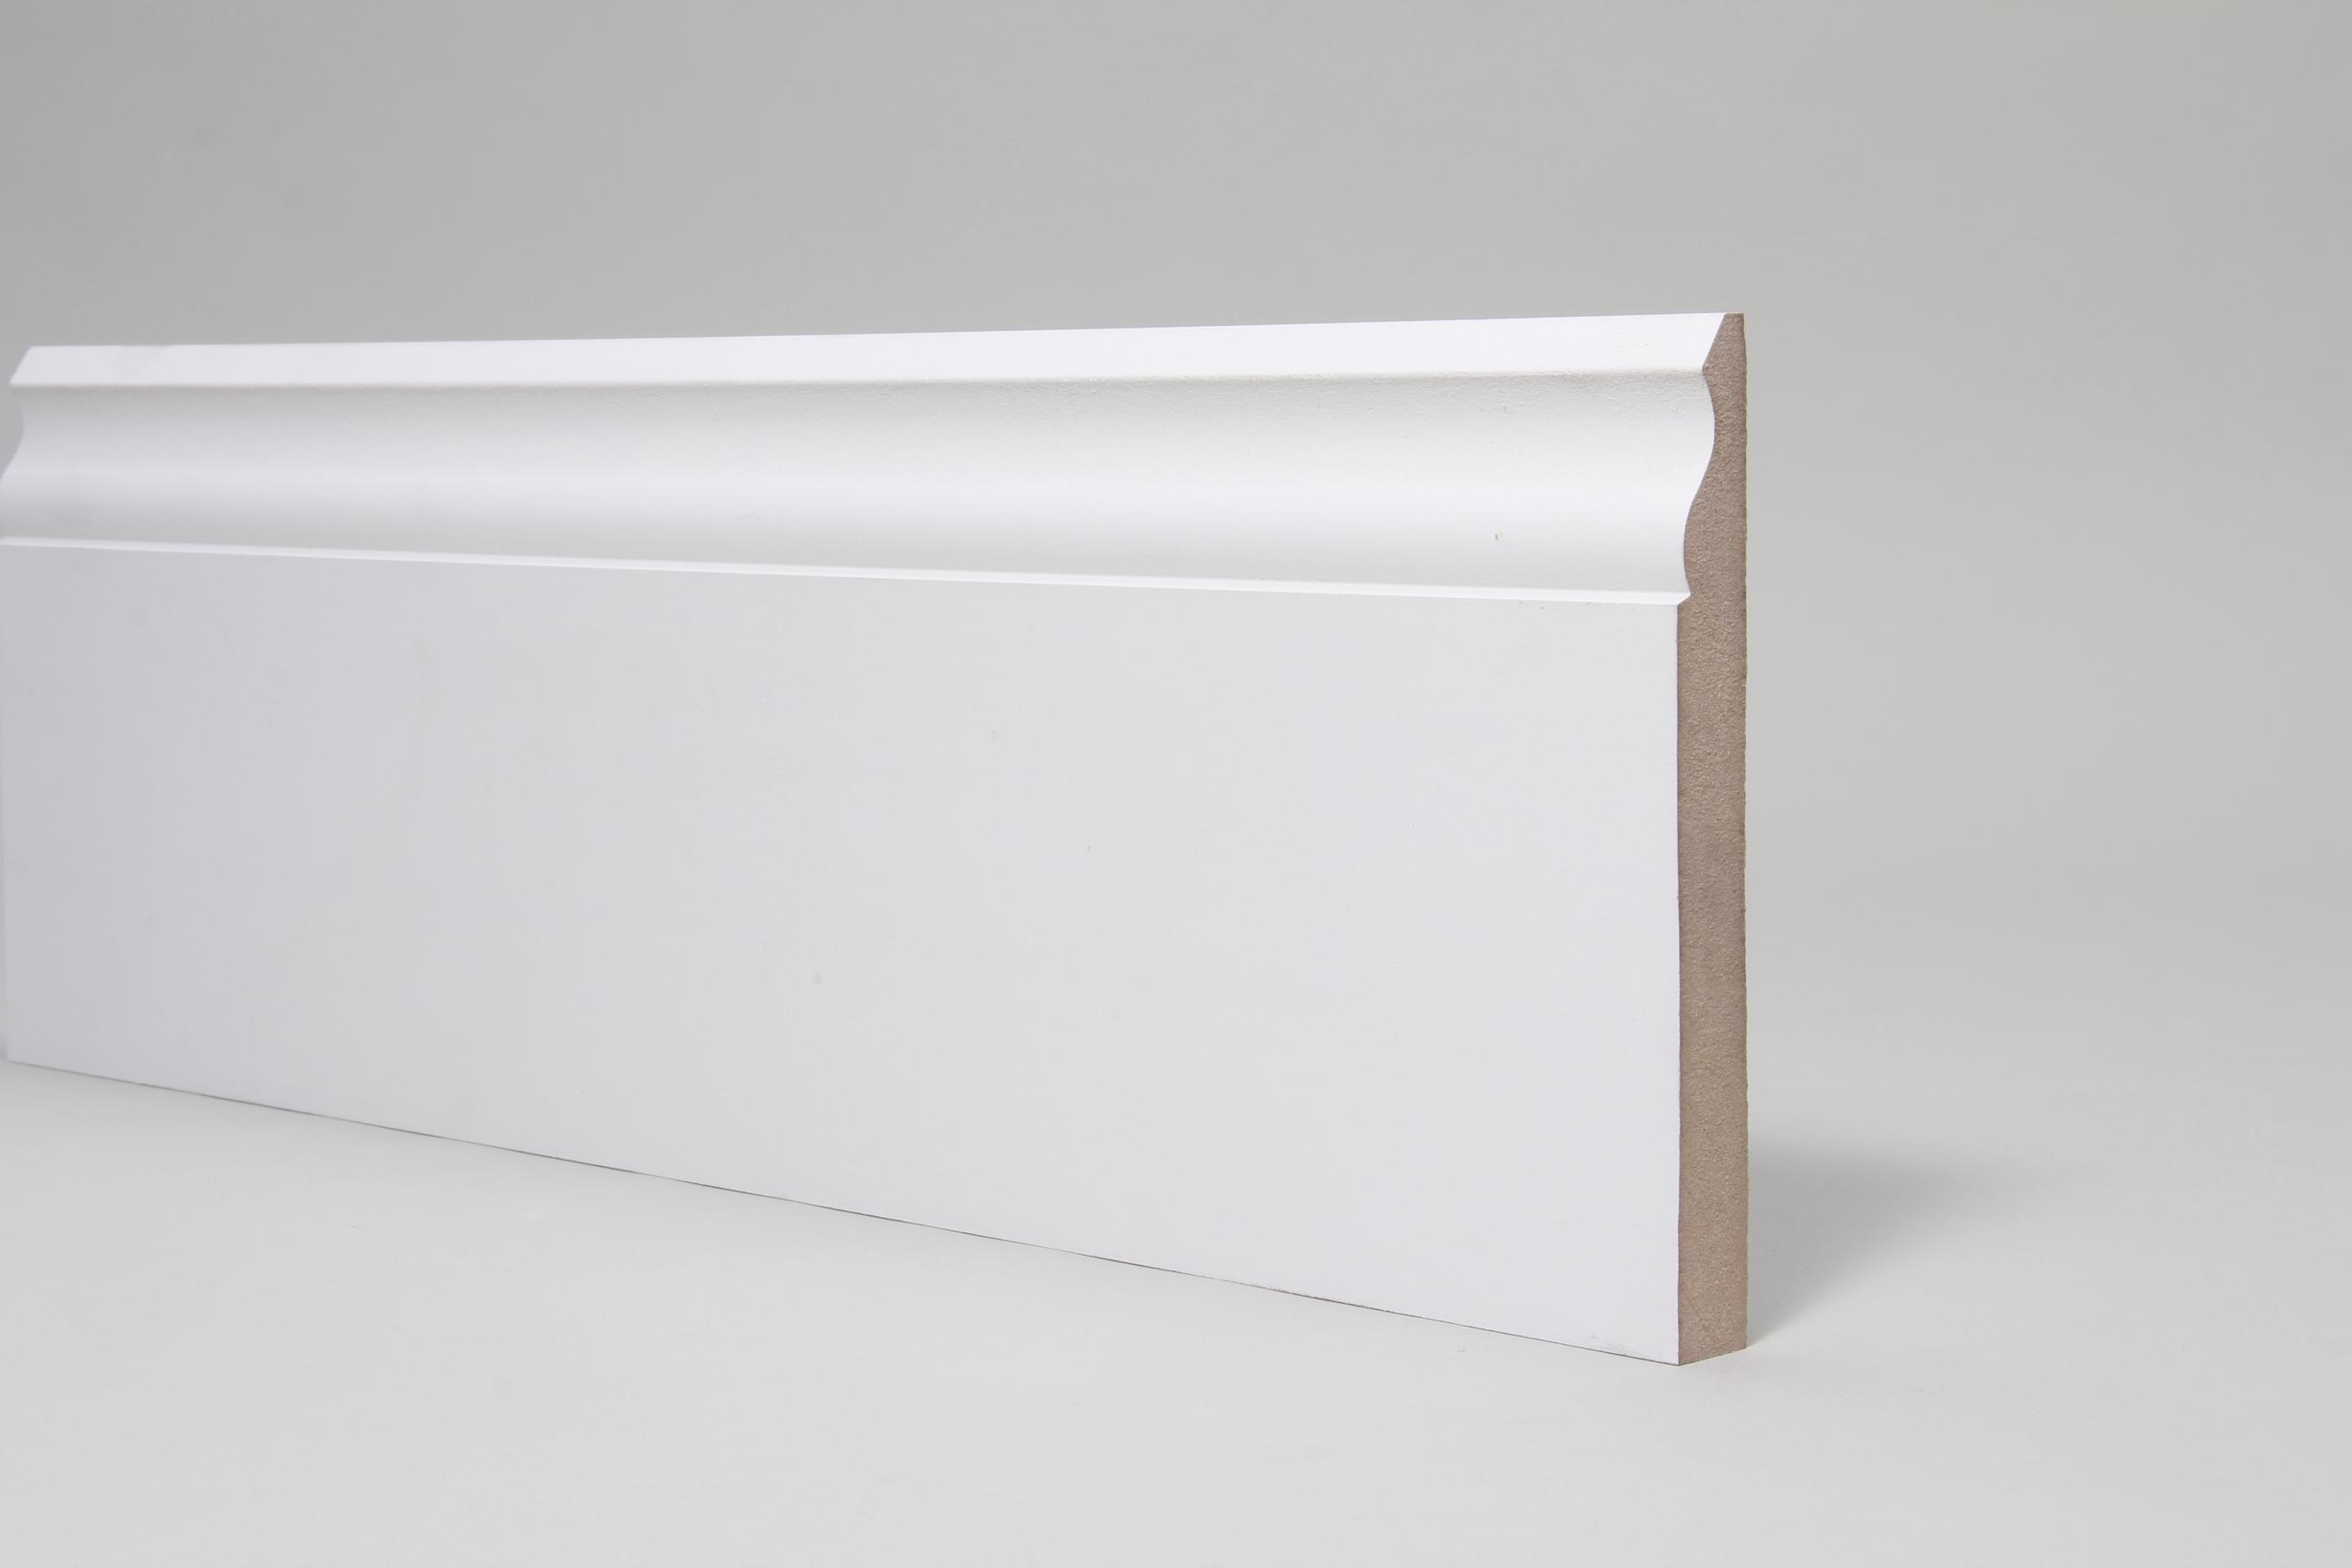 Ogee 18mm x 168mm x 4.4 Mtr Primed